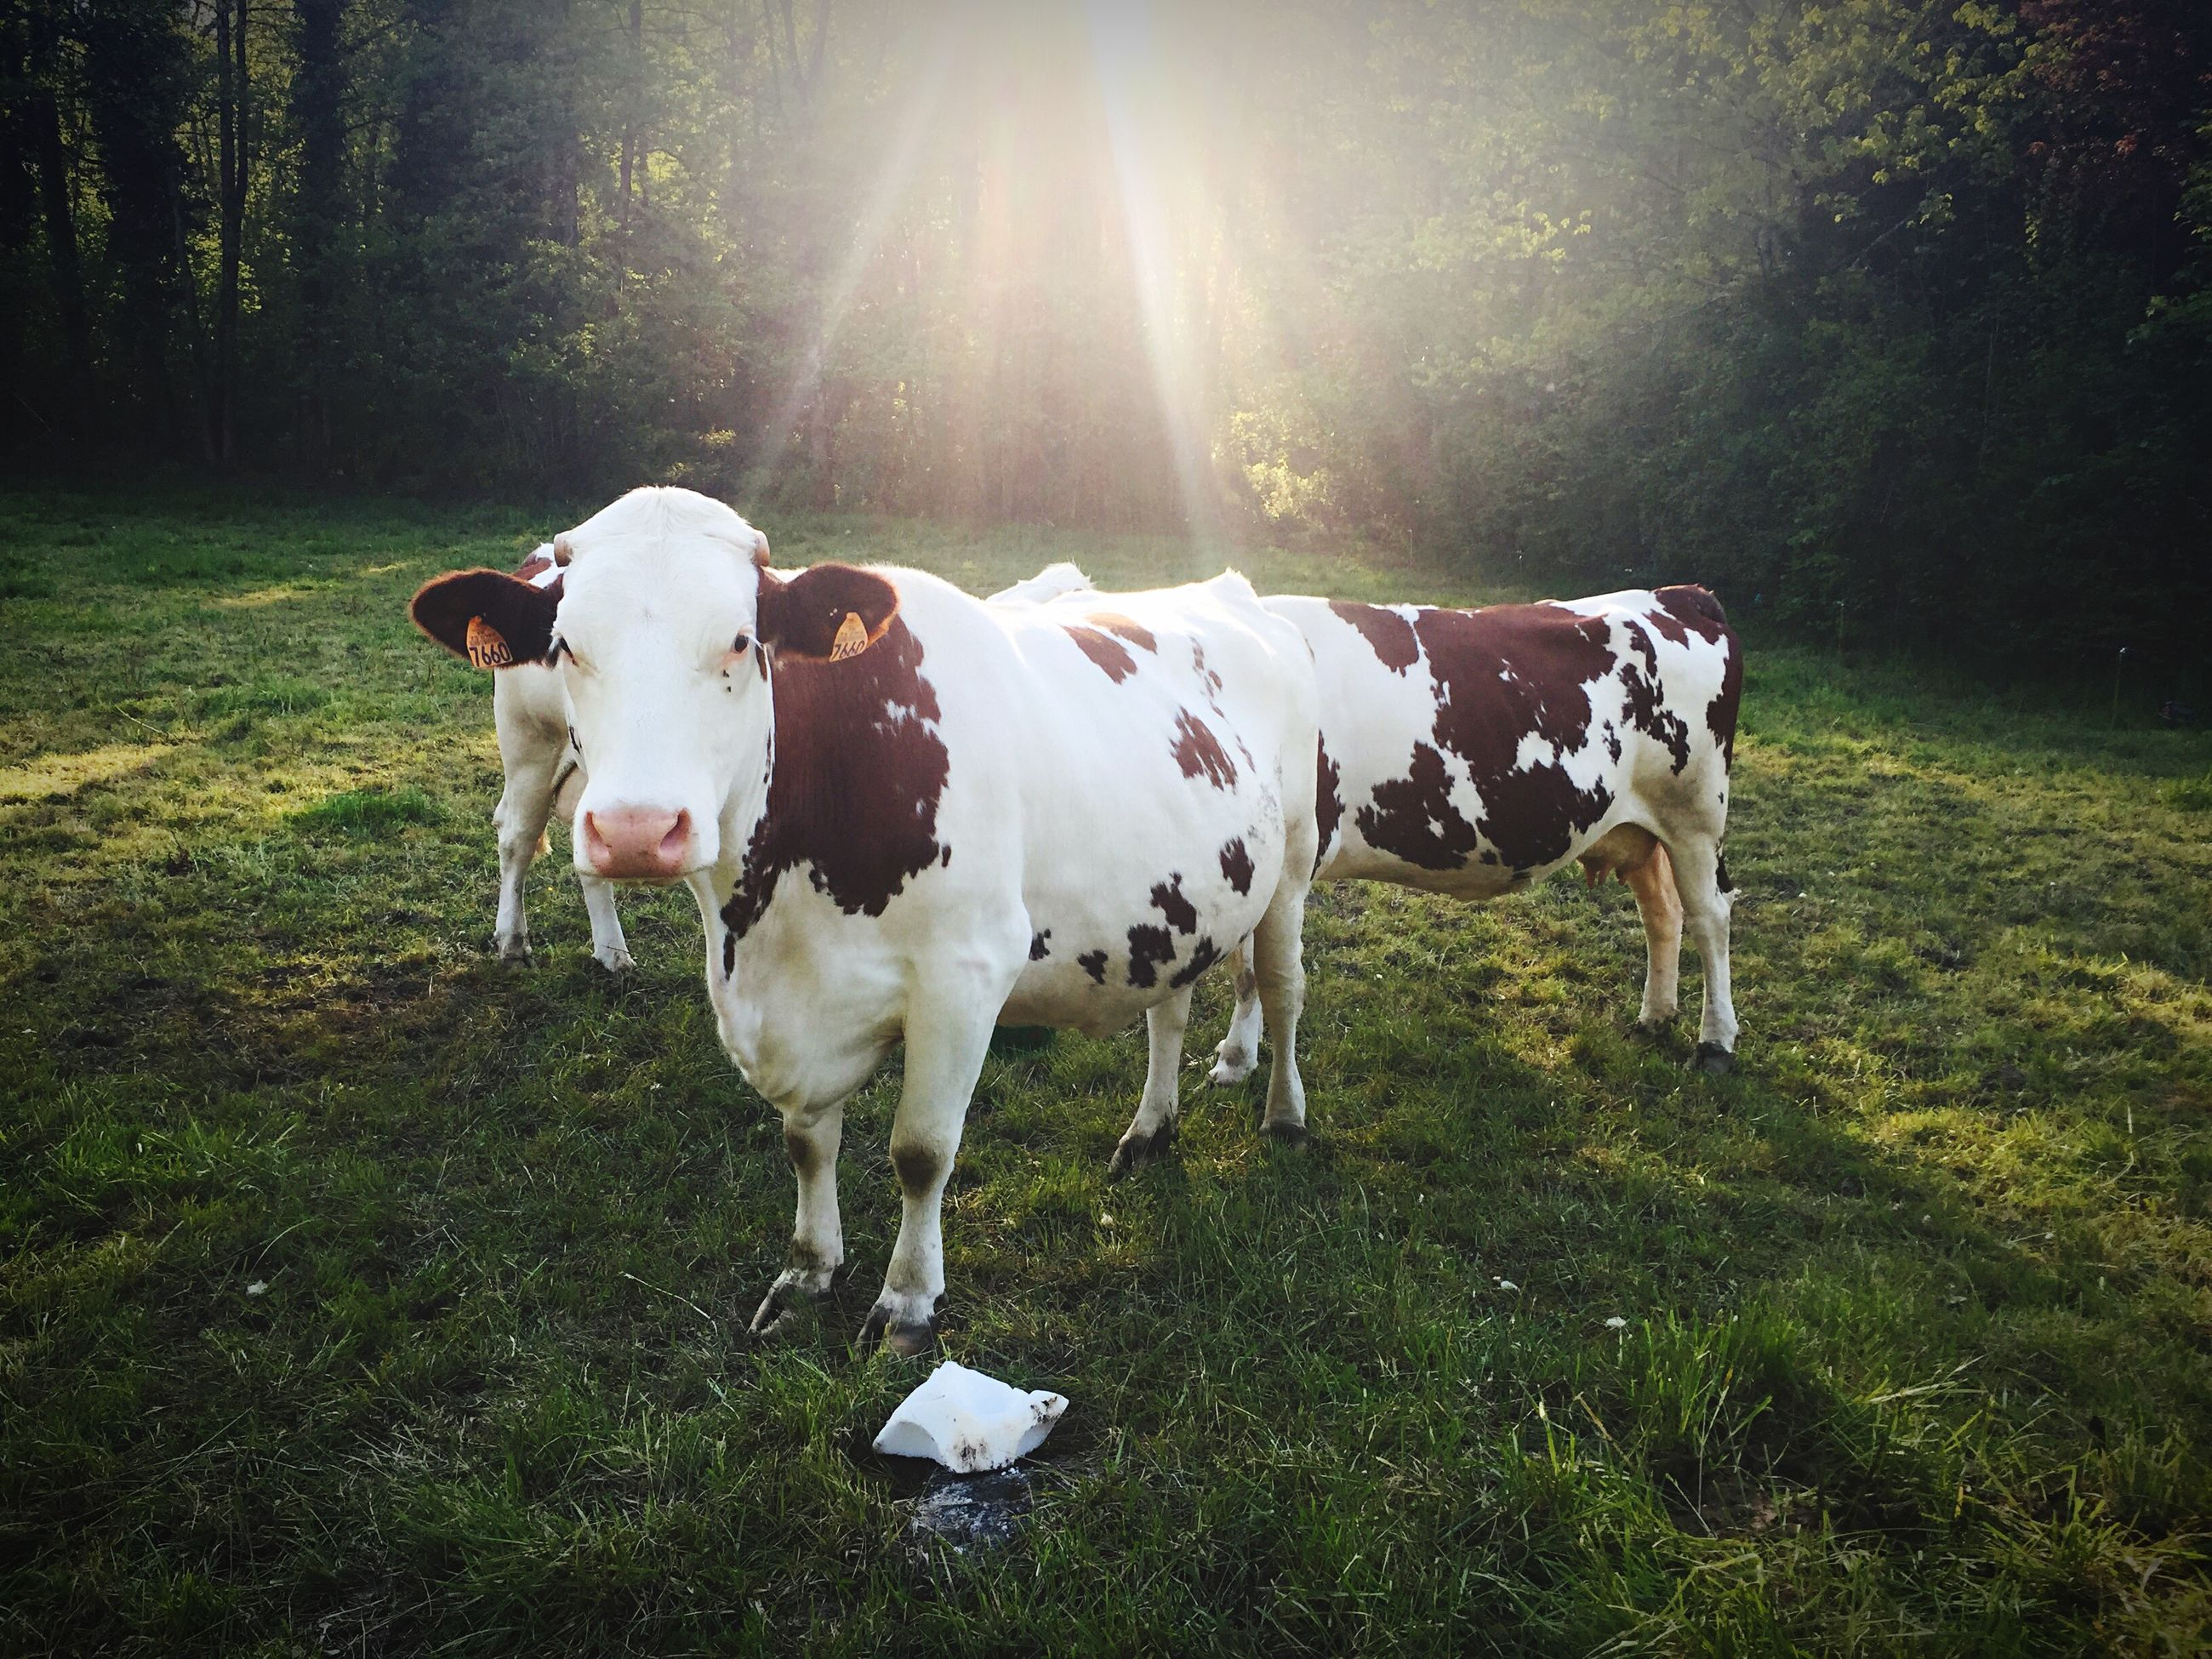 domestic animals, animal themes, grass, mammal, field, livestock, grassy, white color, sunlight, one animal, standing, two animals, nature, cow, full length, pets, horse, day, no people, outdoors